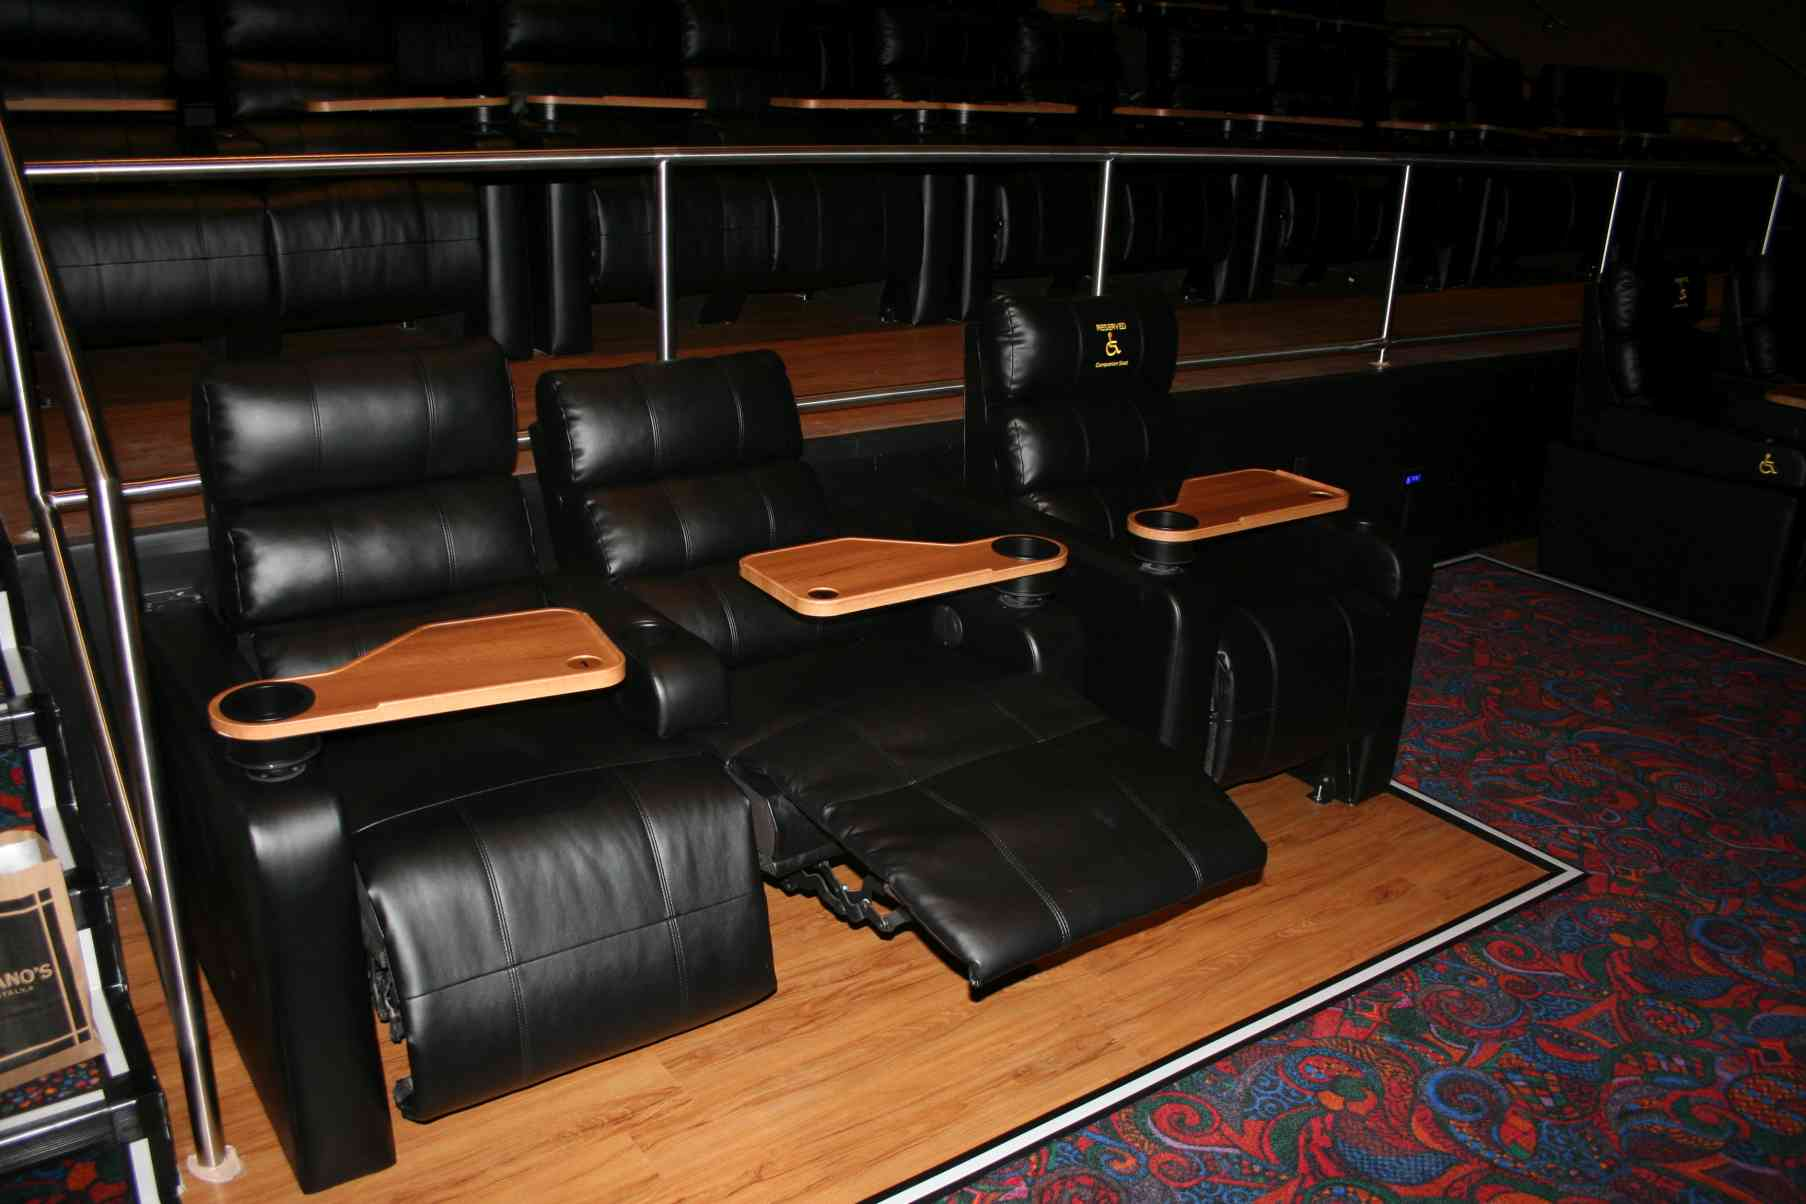 The Regal Cinema 12's electric, reclining seats. (Photo: Mark Heckathorn/DC on Heels)